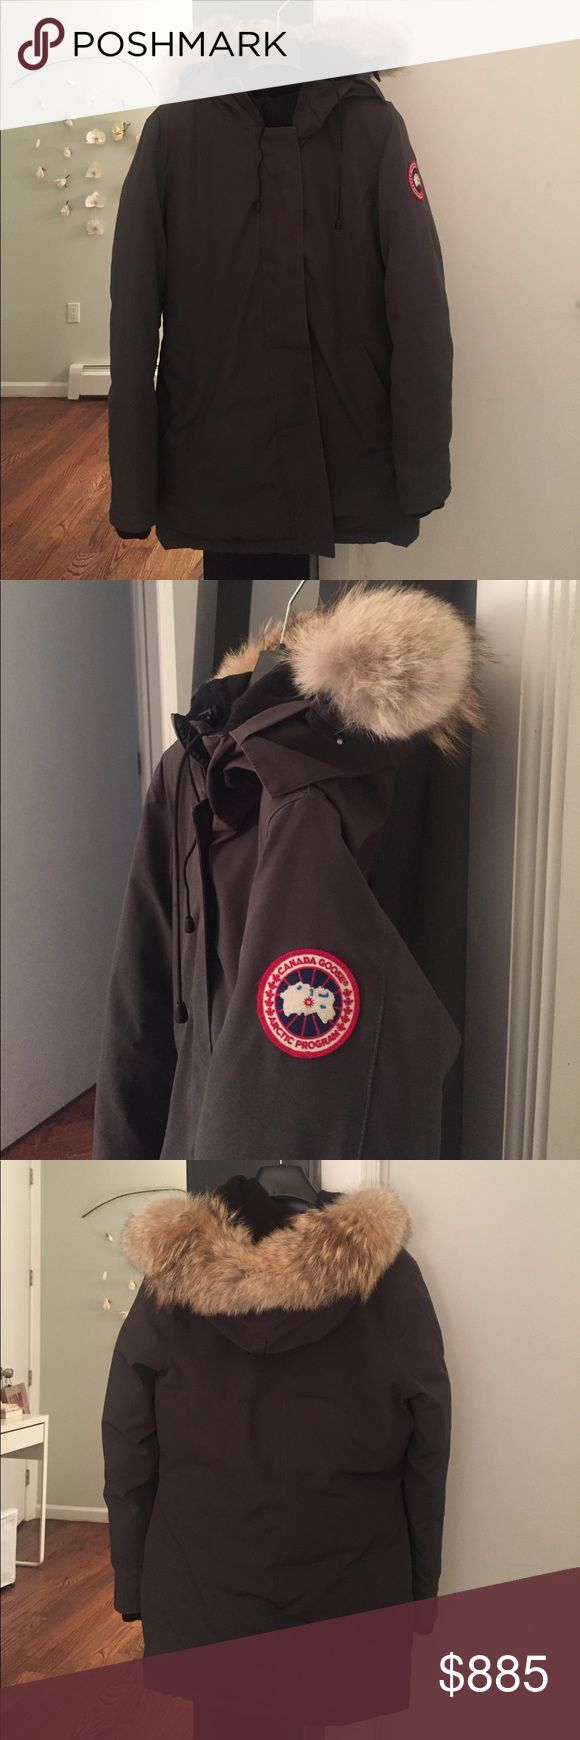 Canada Goose Victoria Parka Canada Goose Victoria Parka. Gently pre-loved for one season. Excellent condition, exceptionally warm and beautiful quality. (Only selling because I'm going to get a black one instead).  Please comment with any questions.  I am planning on posting elsewhere as well.  Price is for you to save on sales tax (which is about $80 at 8.875 NYC tax rate). Posh will authenticate. Purchased at Bloomingdales NYC. They're saying it's going to be a VERY cold winter - prepare…